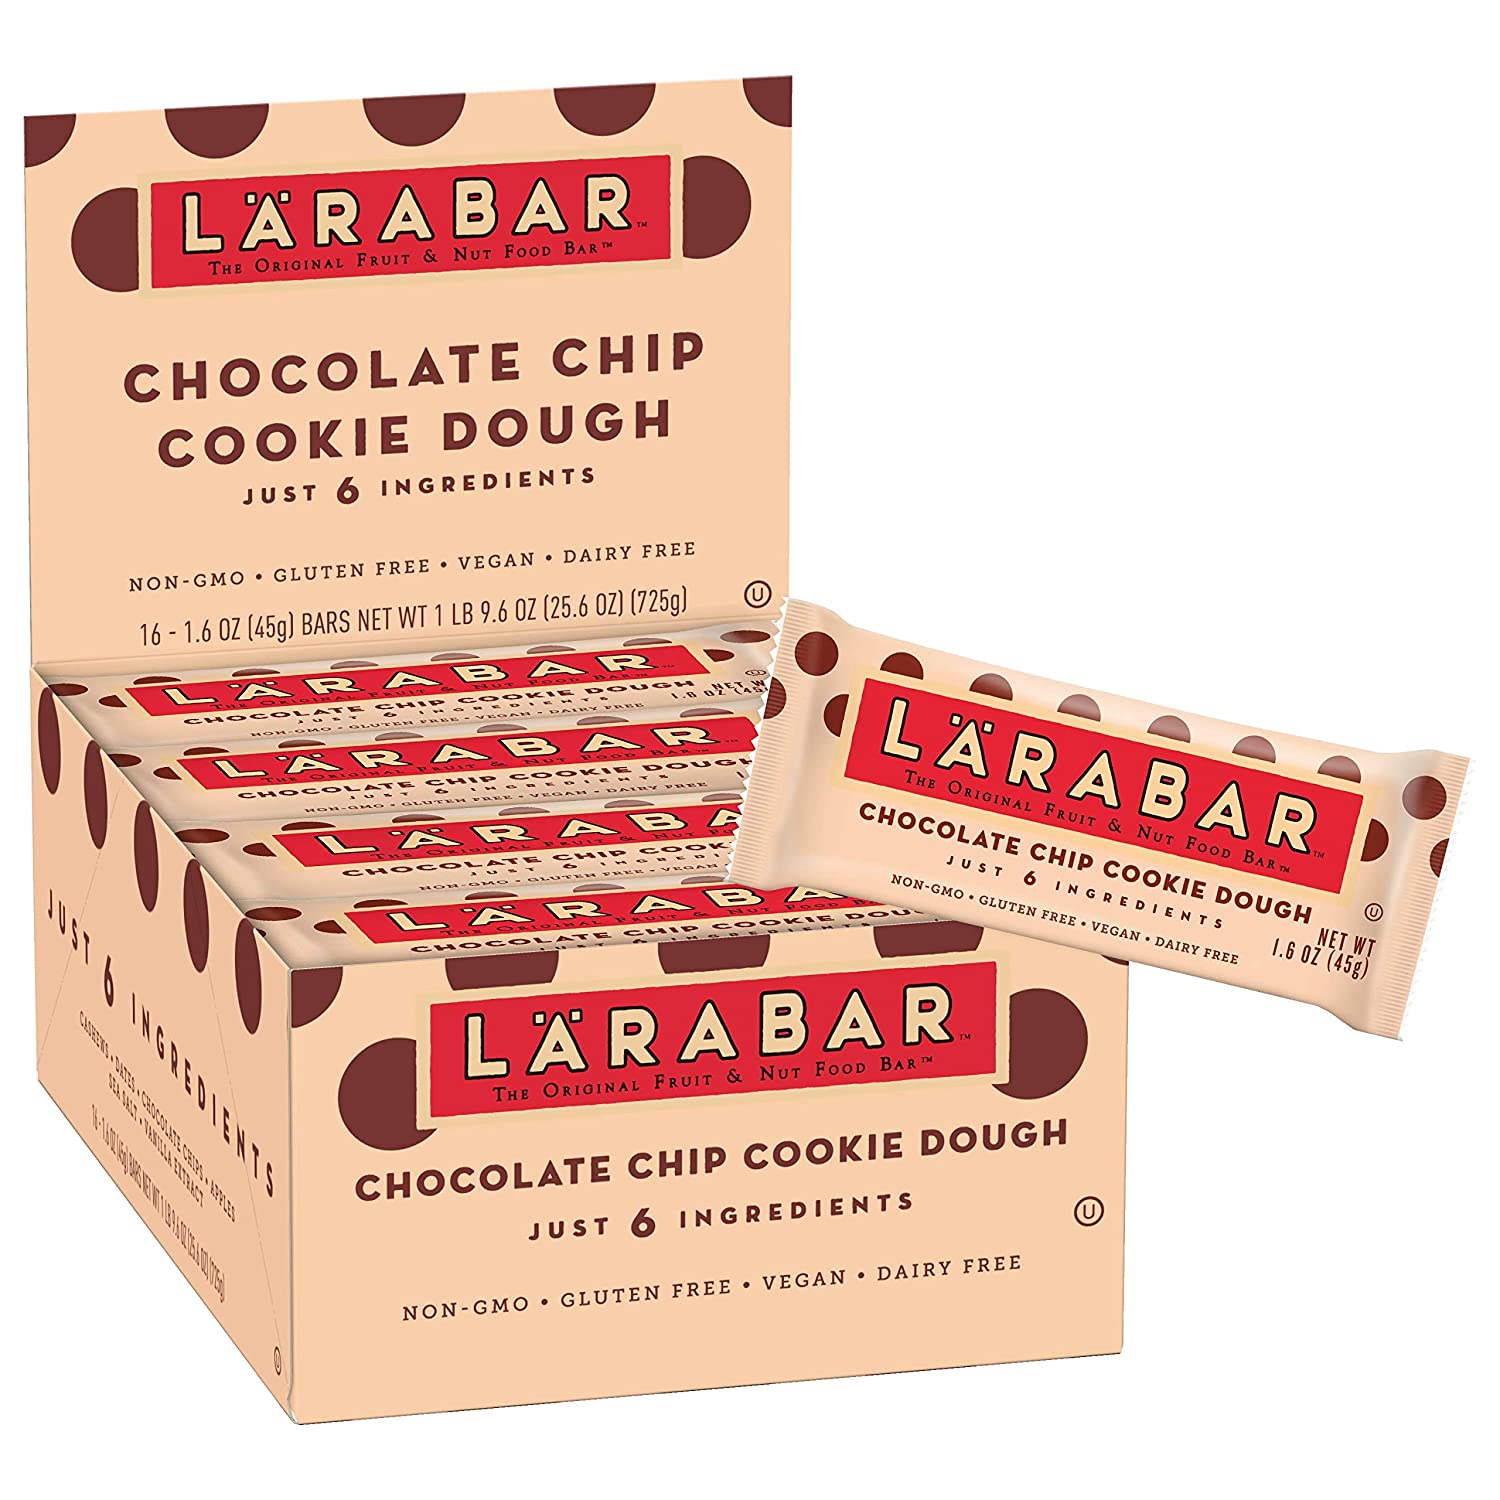 3. Larabar Cookie Dough